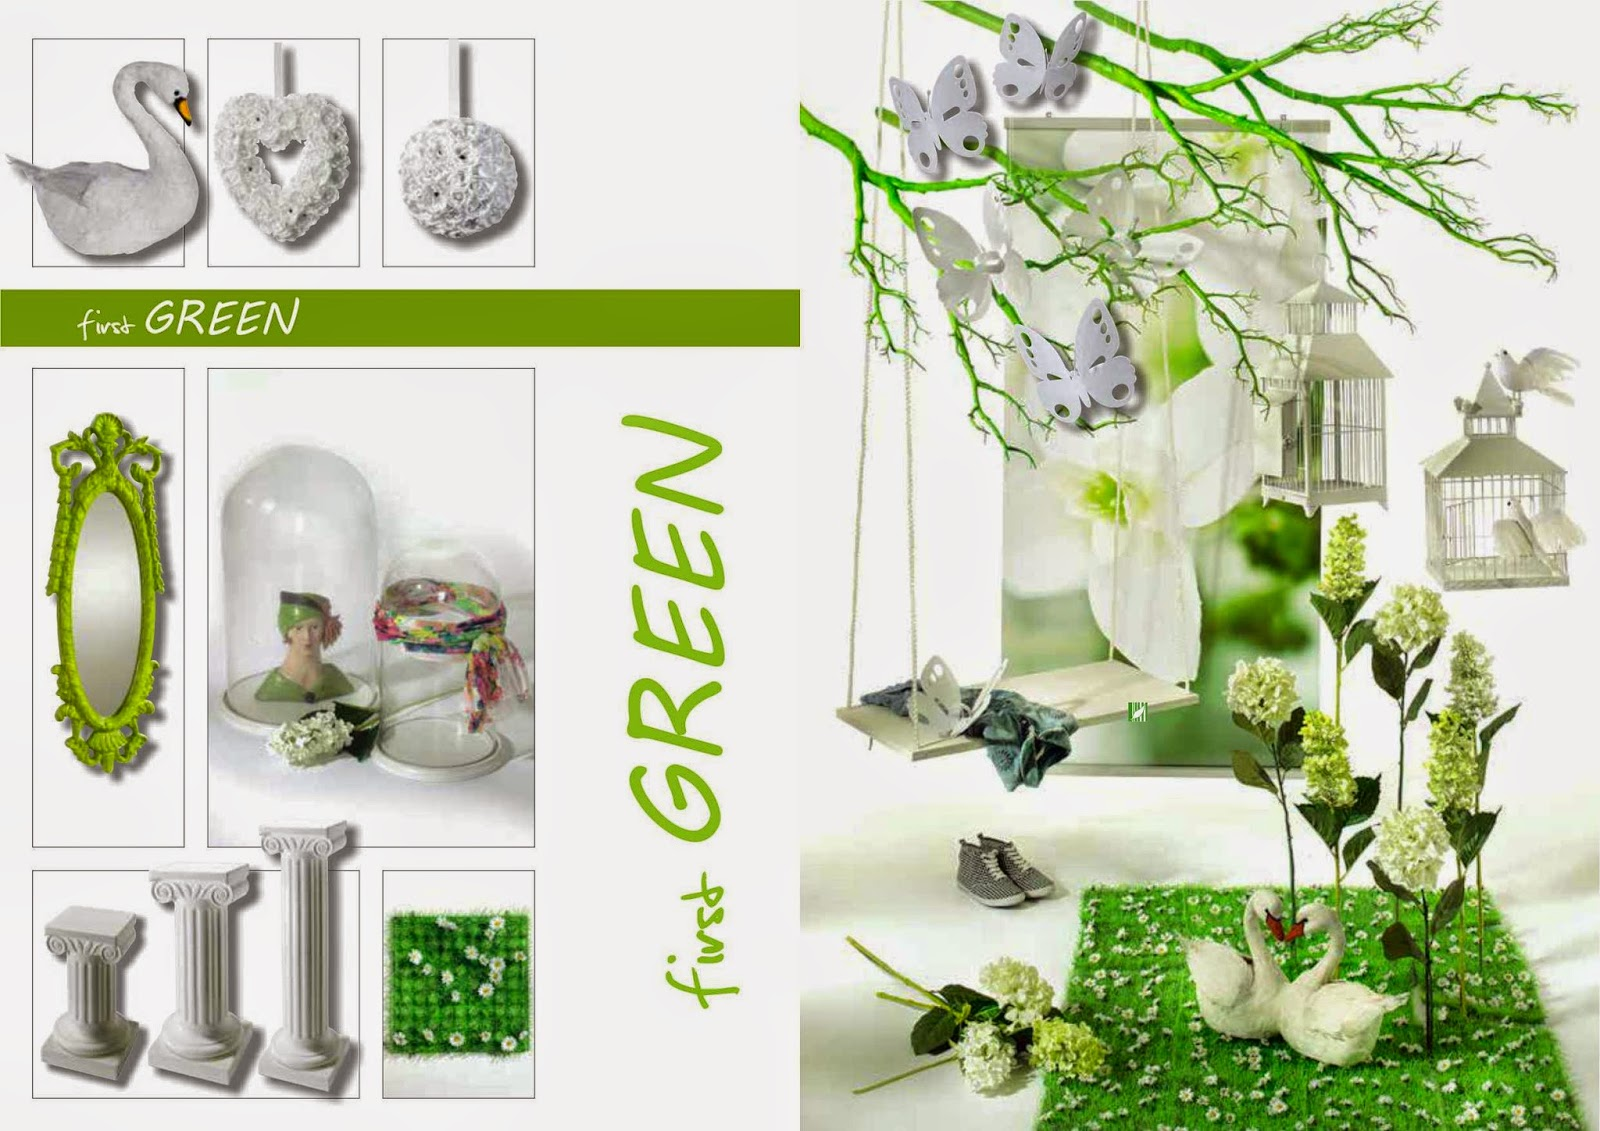 Creation vetrina by decorado vetrine - Idee per vetrine primaverili ...